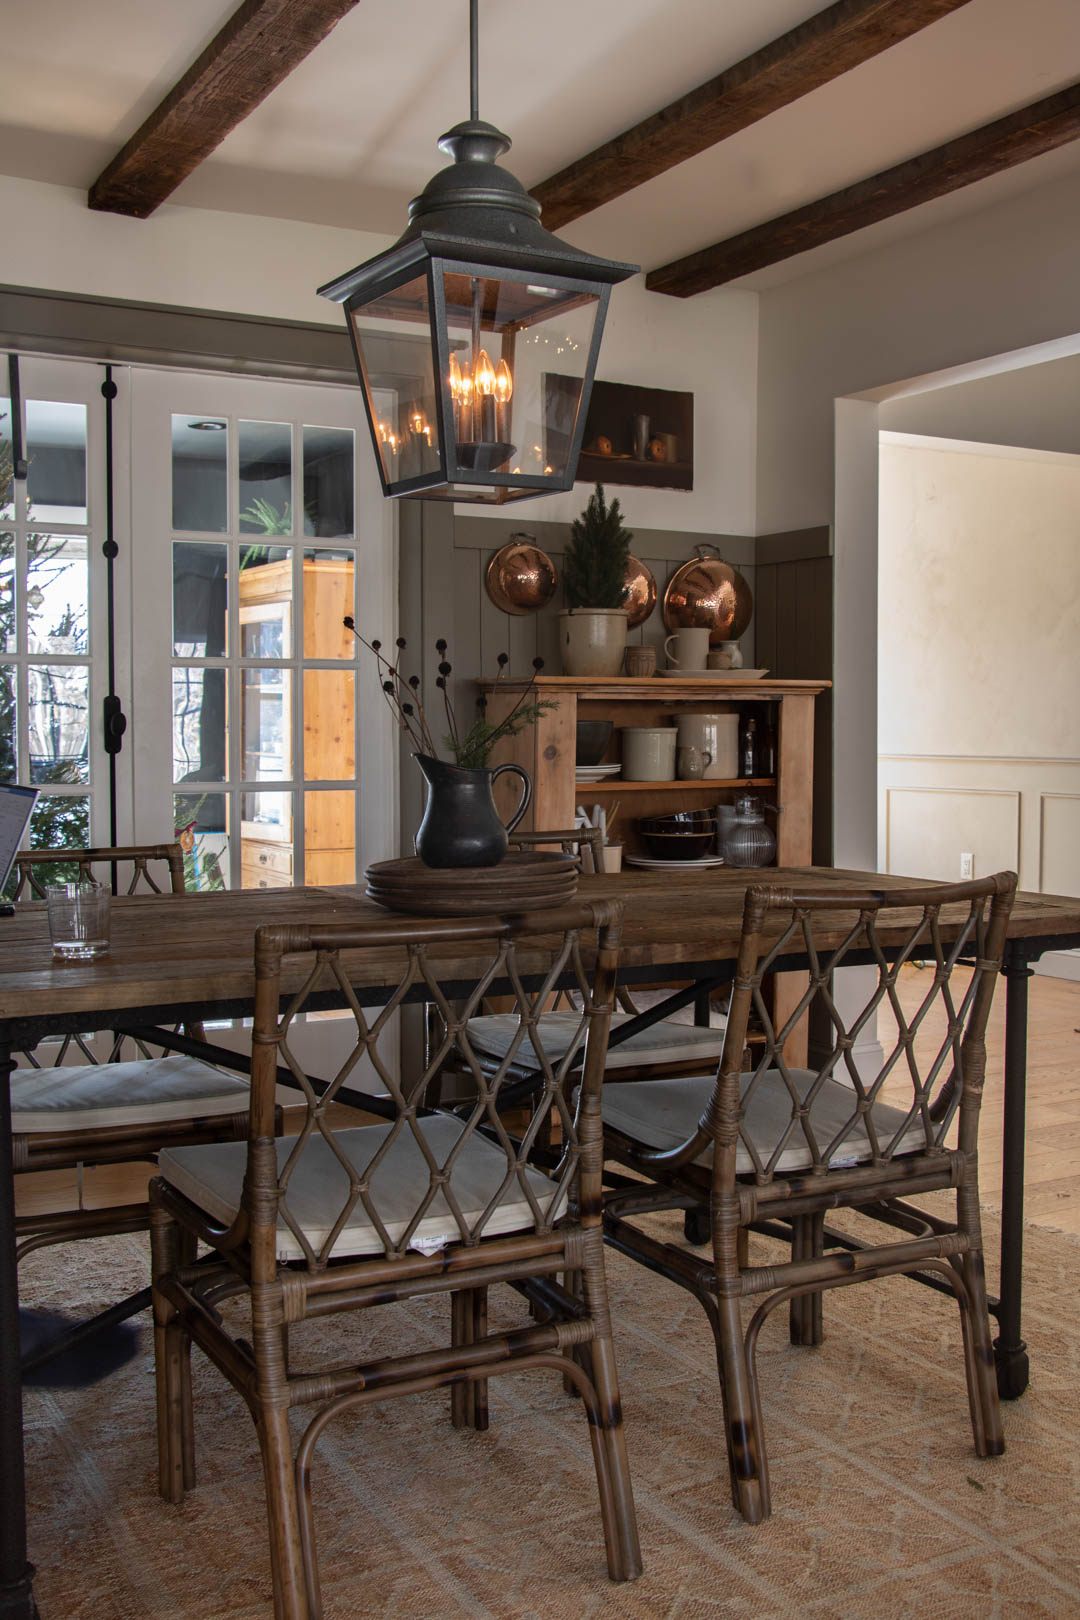 Copley Gray Dining Room with Farmhouse Table - Seeking Lavender Lane